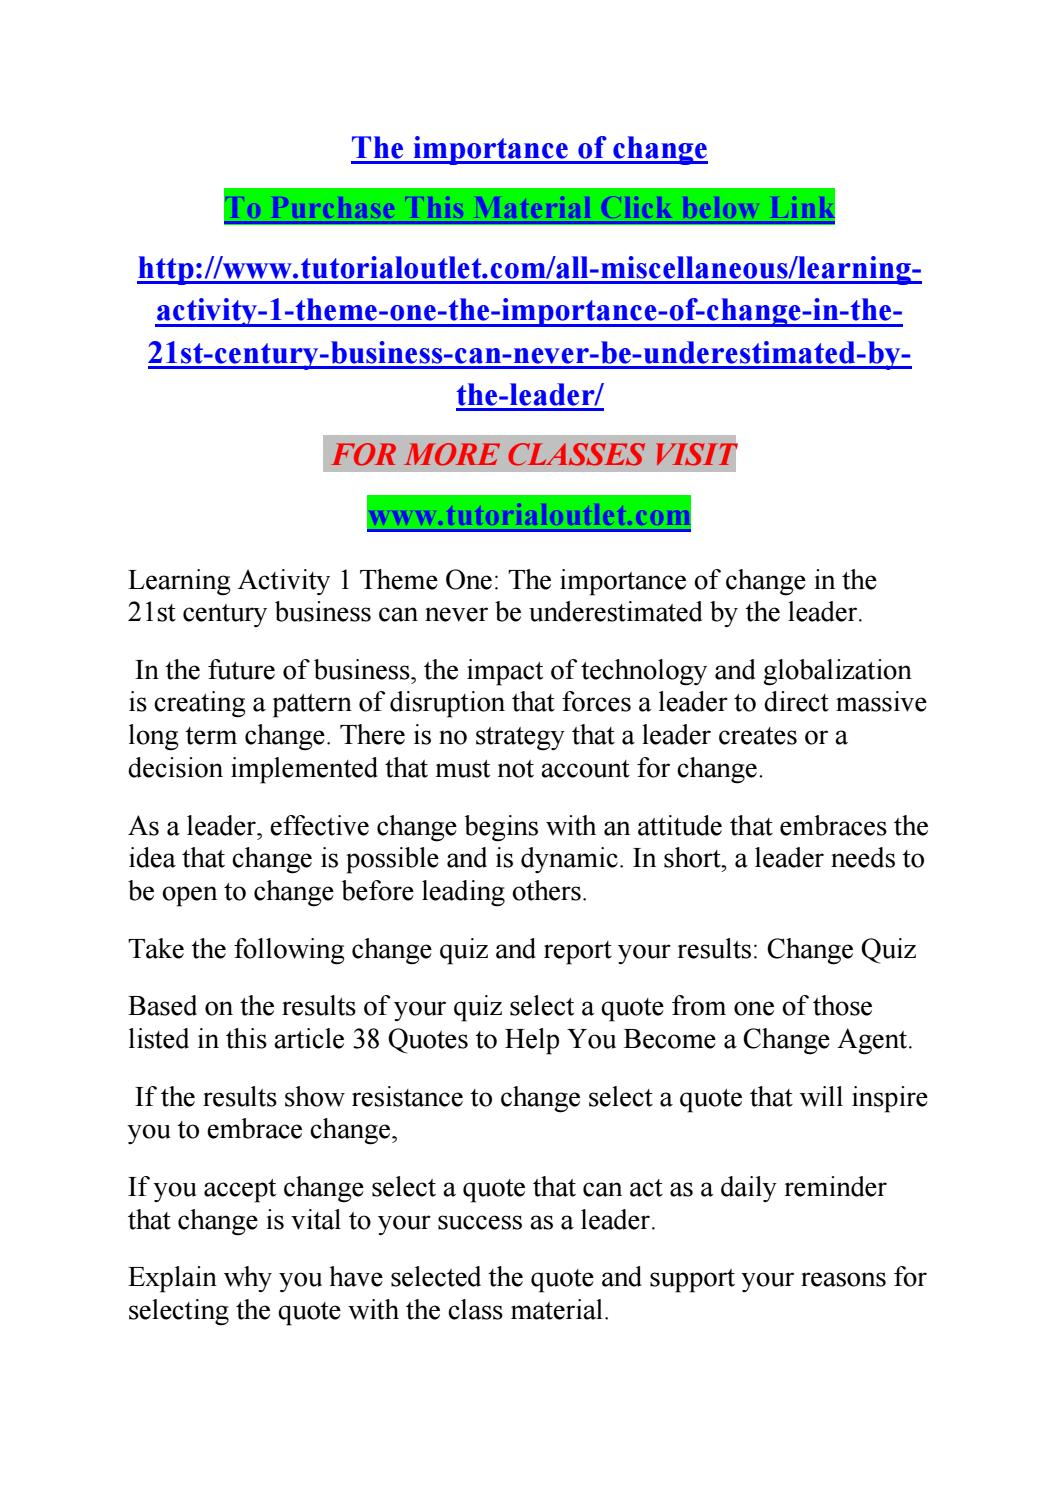 Quotes Quiz The Importance Of Changealbert0062  Issuu